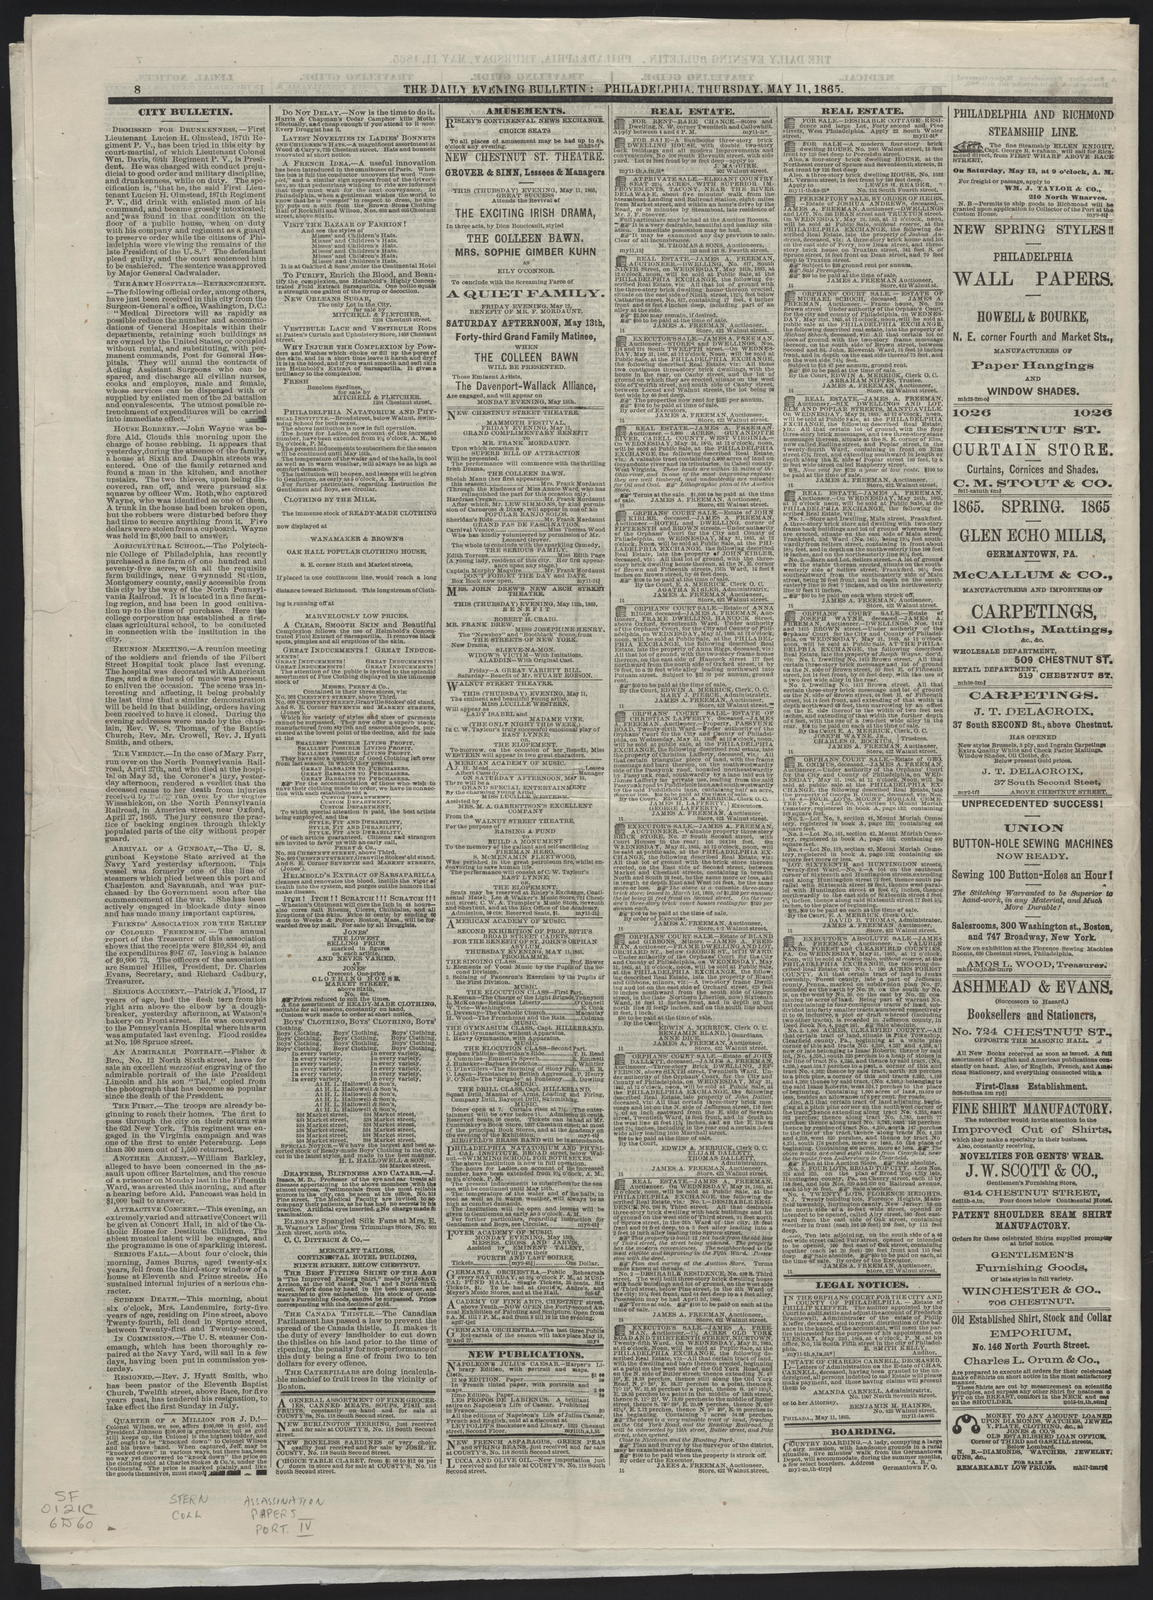 Daily Evening Bulletin, [newspaper]. May 11, 1865.